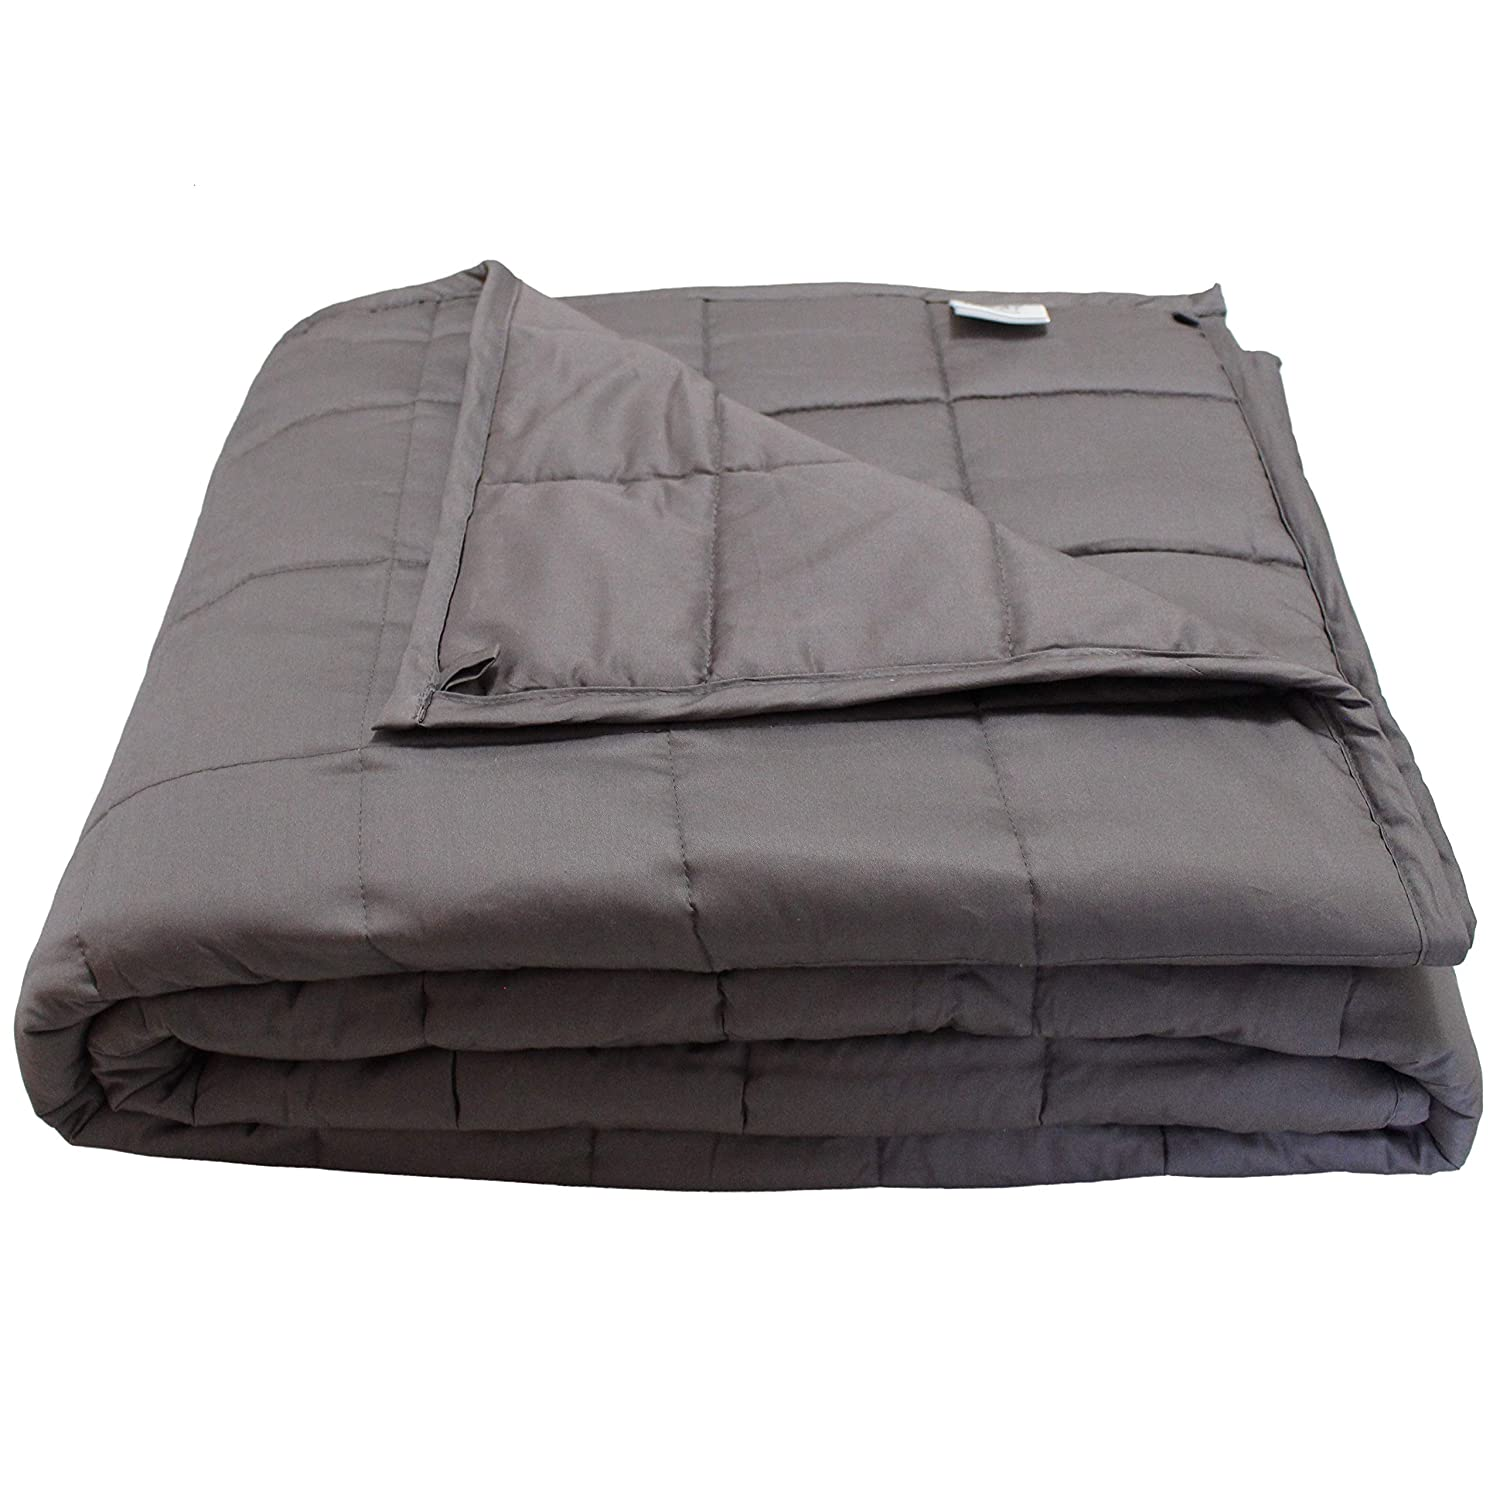 CMFRT Weighted Blanket Get Quality Rest, Great for Stress Relief (48